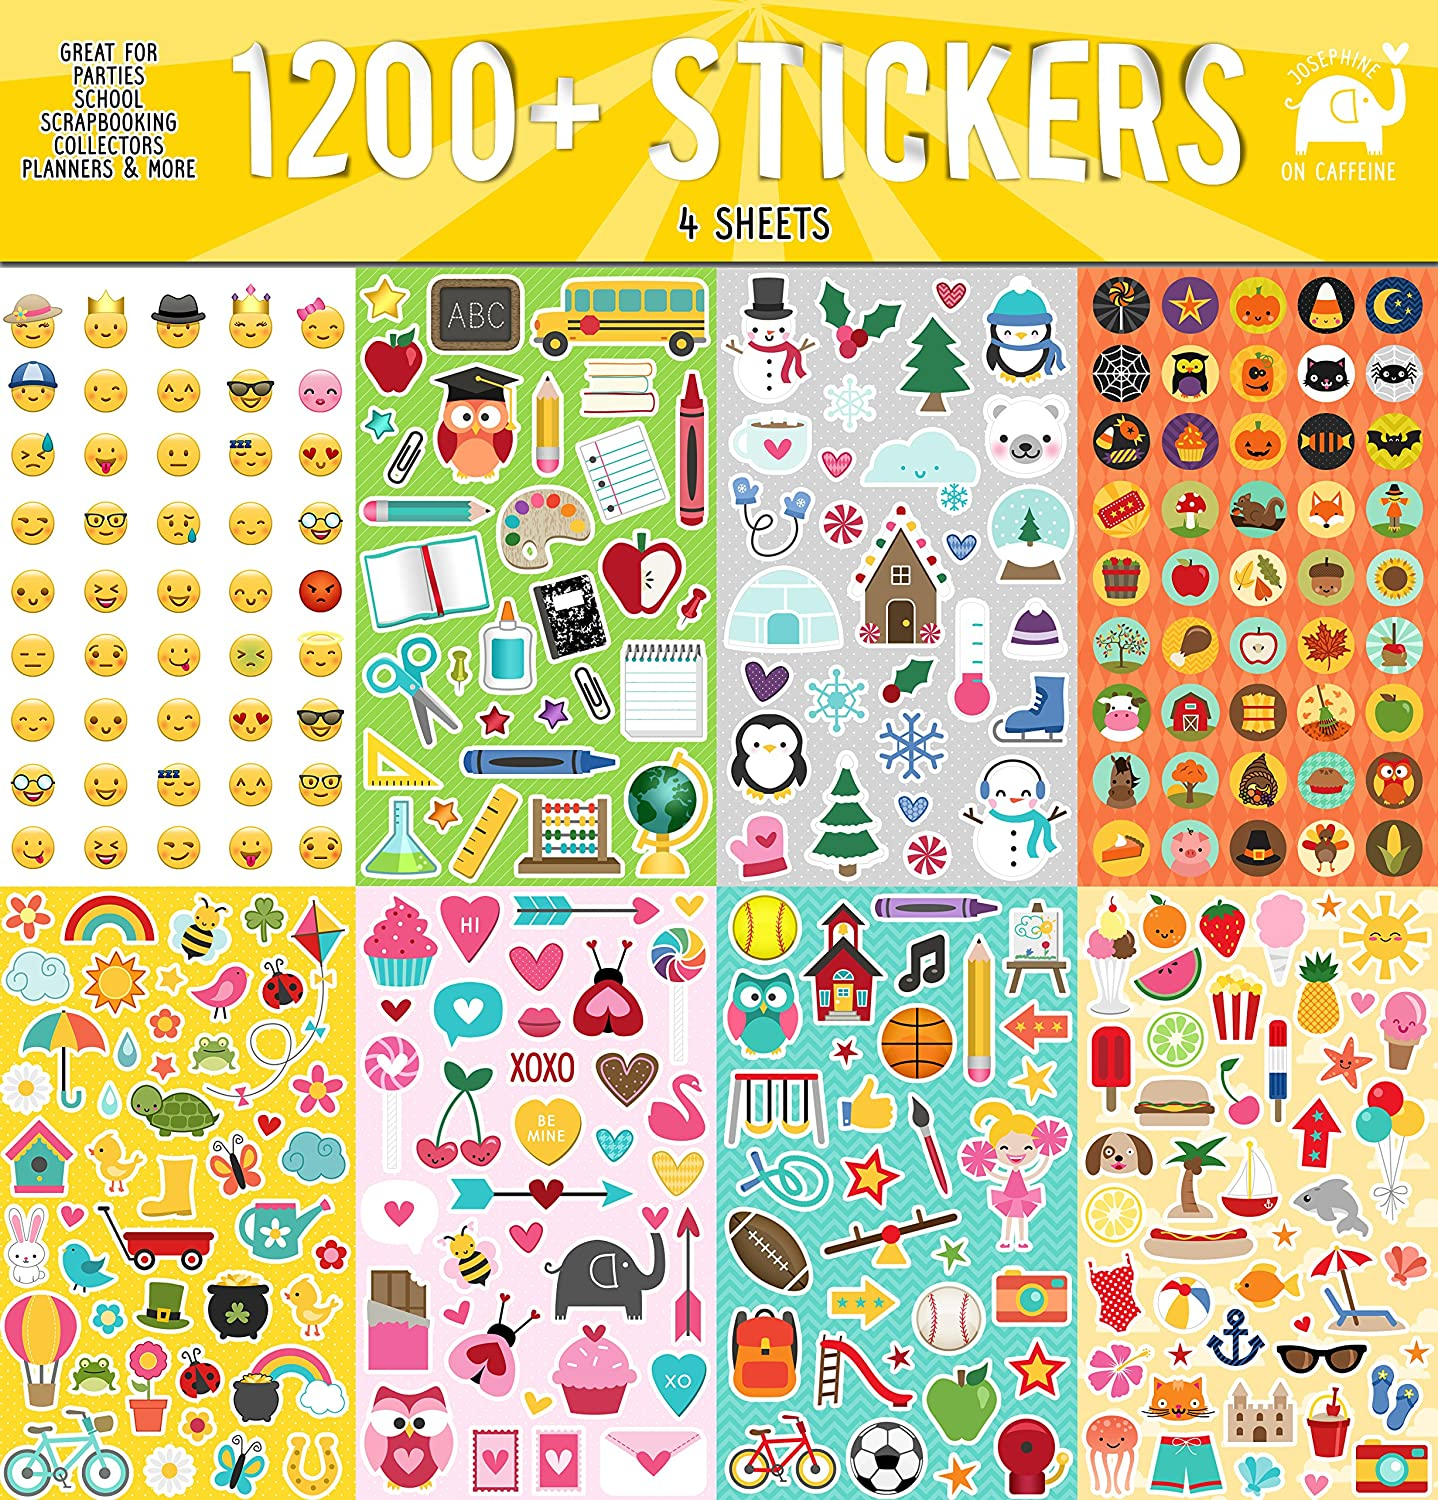 Year Round Sticker Assortment Set (1200+ Count) Collection for Children Teacher Parent Grandparent Kids Crafts Planners Scrapbooking by Josephine on Caffeine